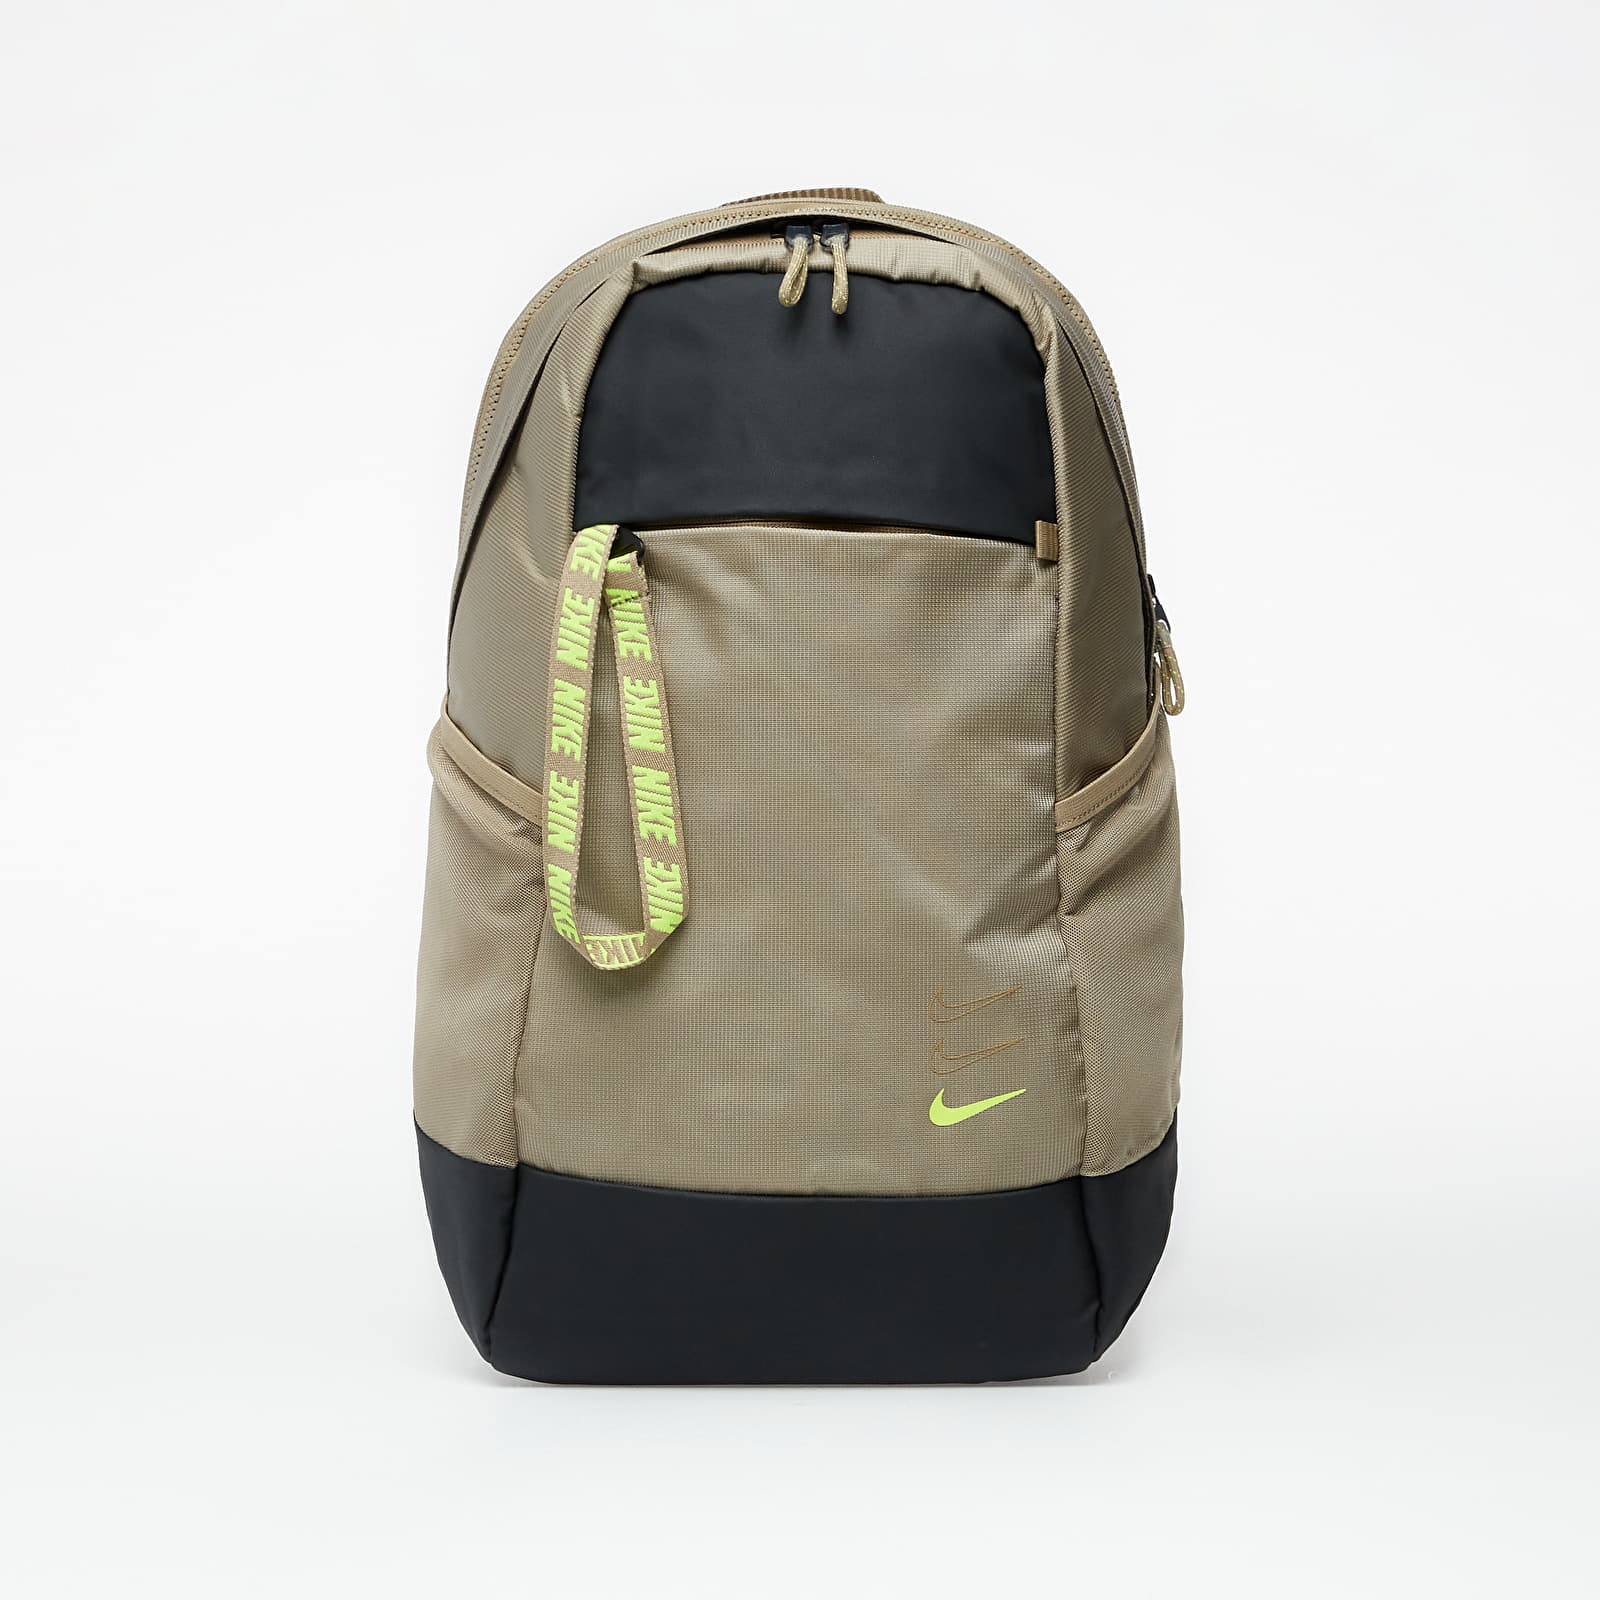 Mochilas Nike Sportswear Essentials Backpack Khaki/ Dark Smoke Grey/ Lemon Venom